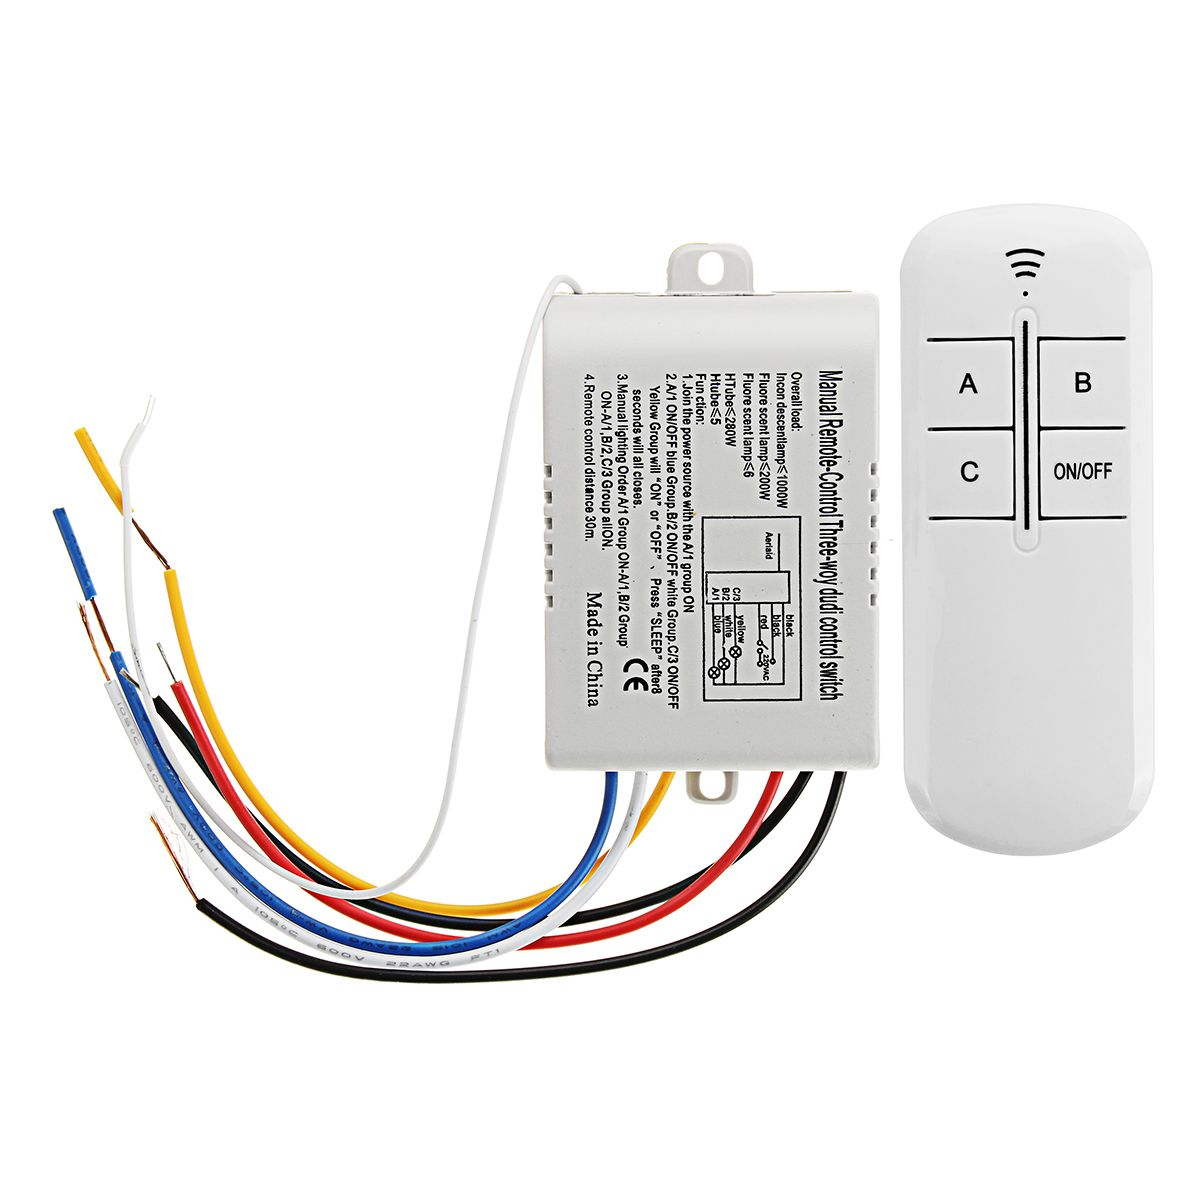 hight resolution of 3 ways on off wireless remote control switch receiver transmitter for led lamp ac220v